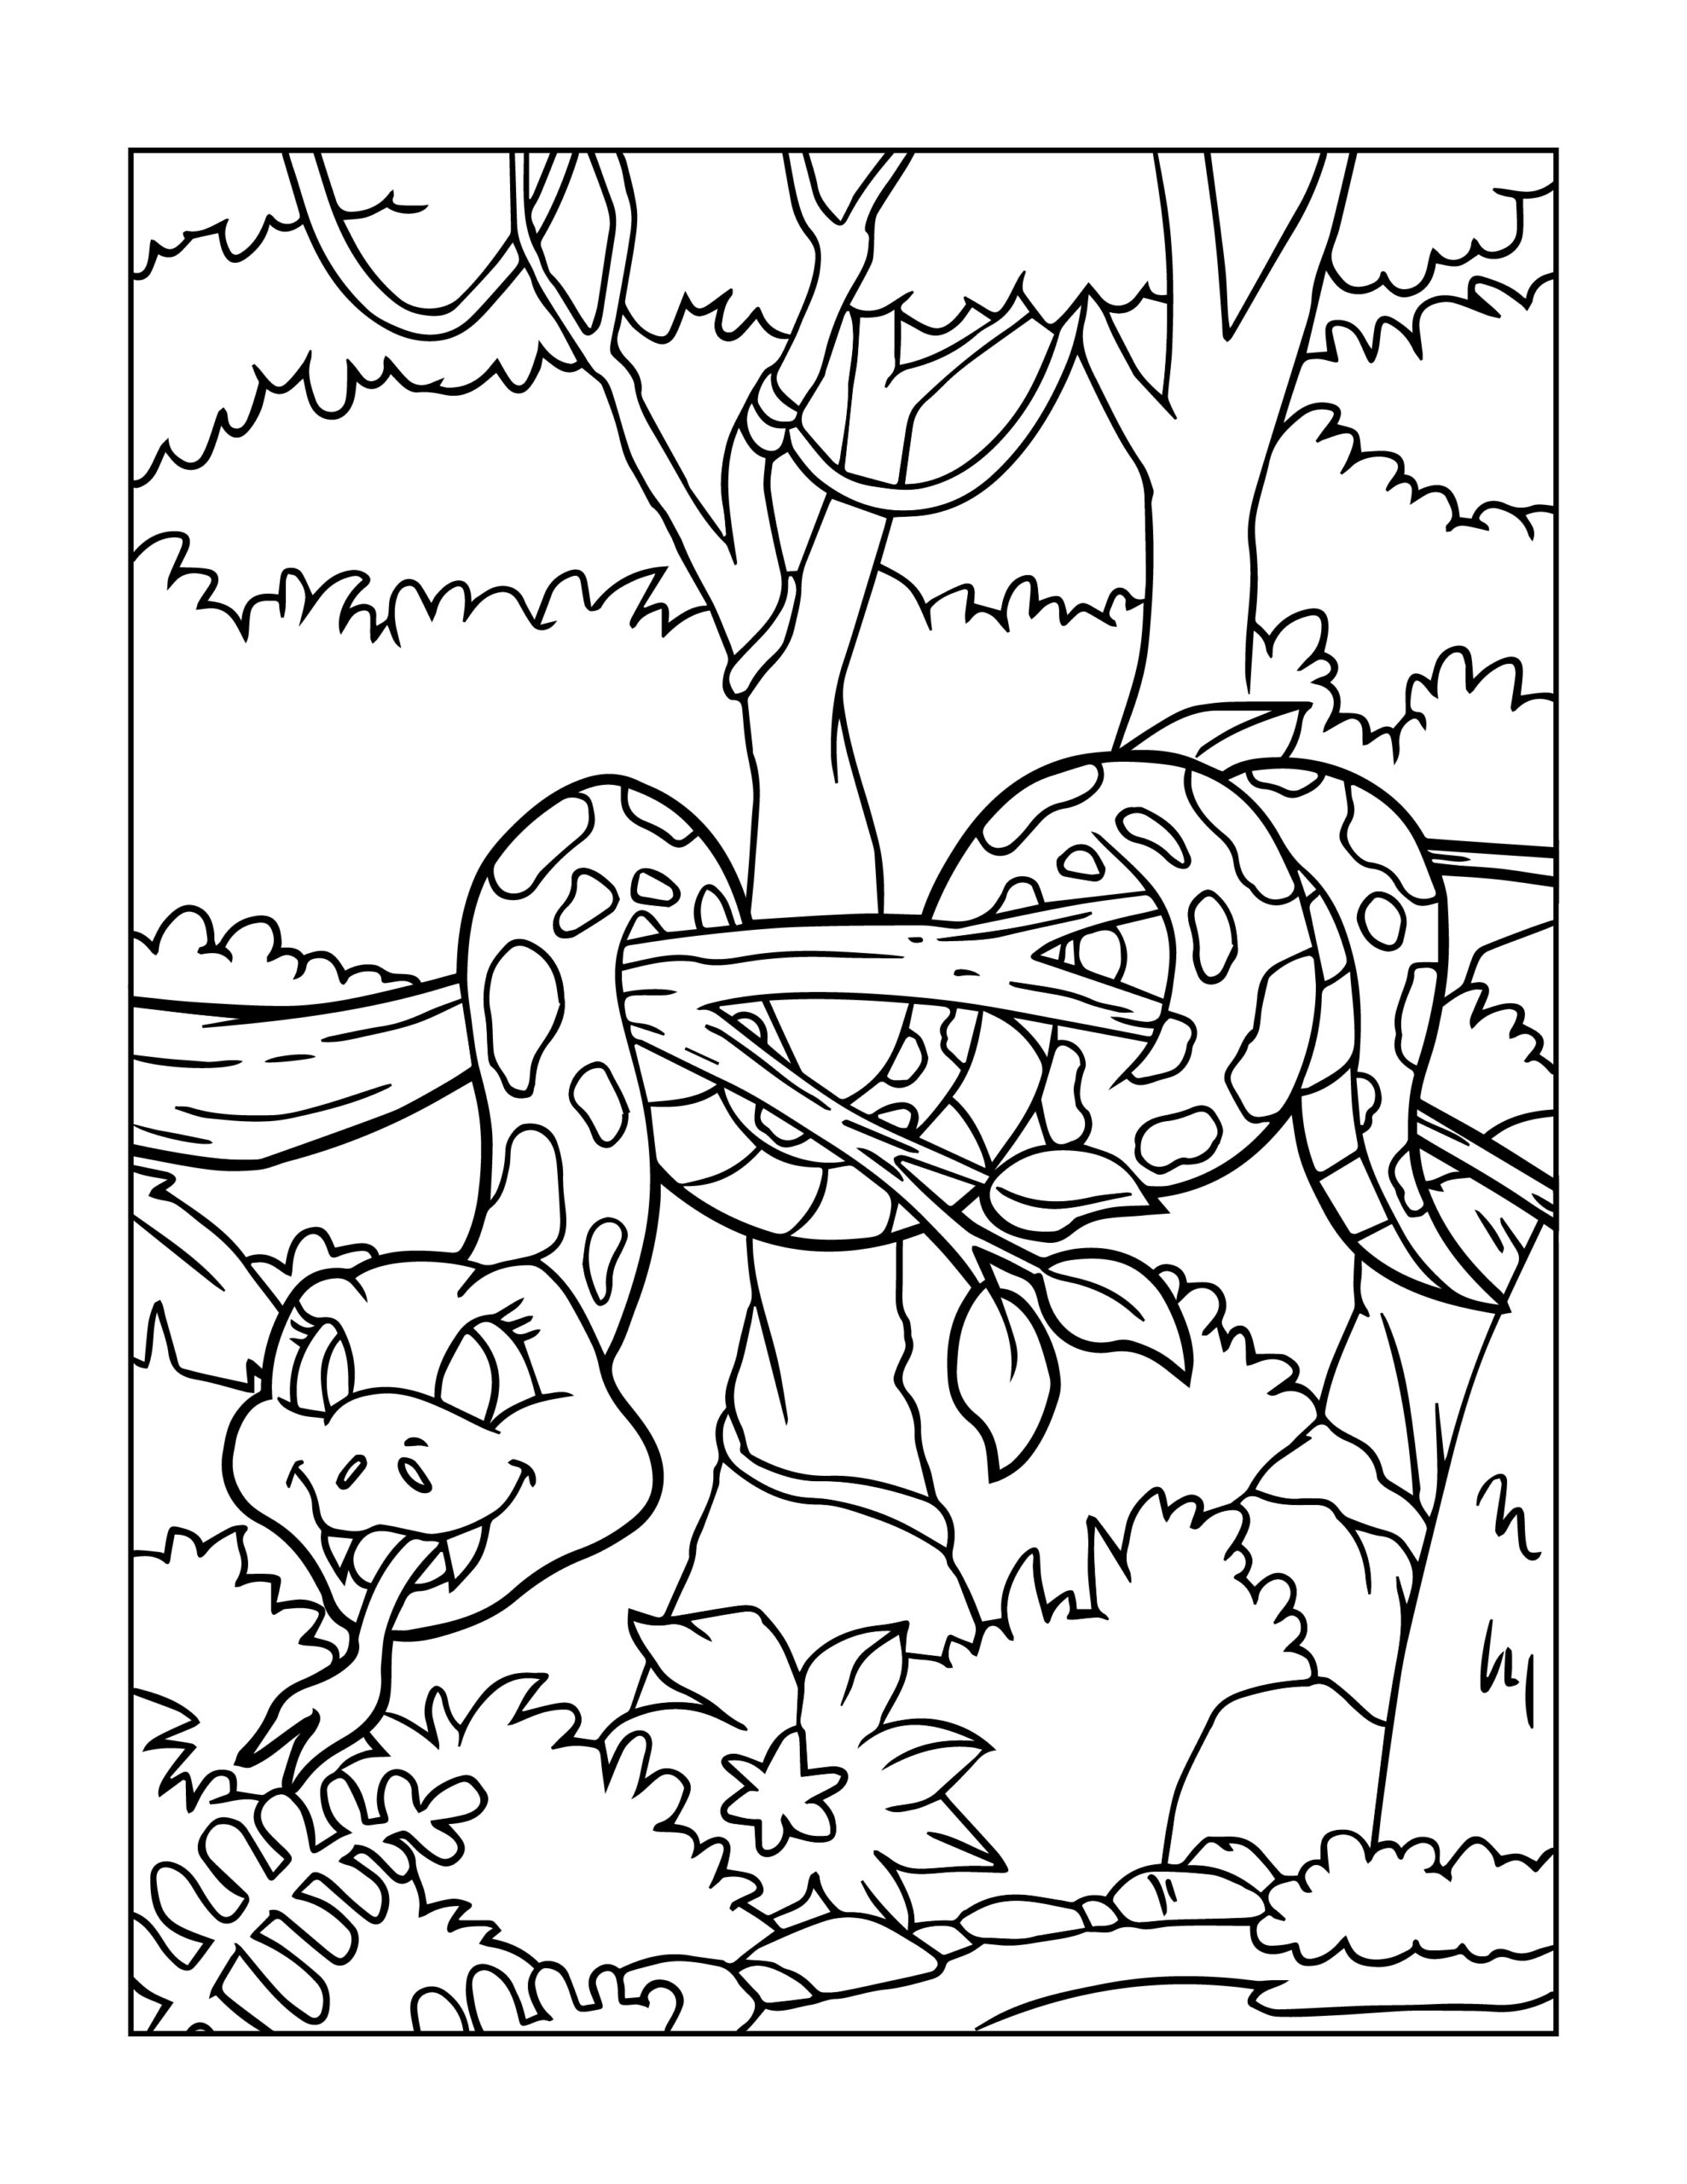 zoo animal coloring cute animal coloring pages best coloring pages for kids zoo coloring animal